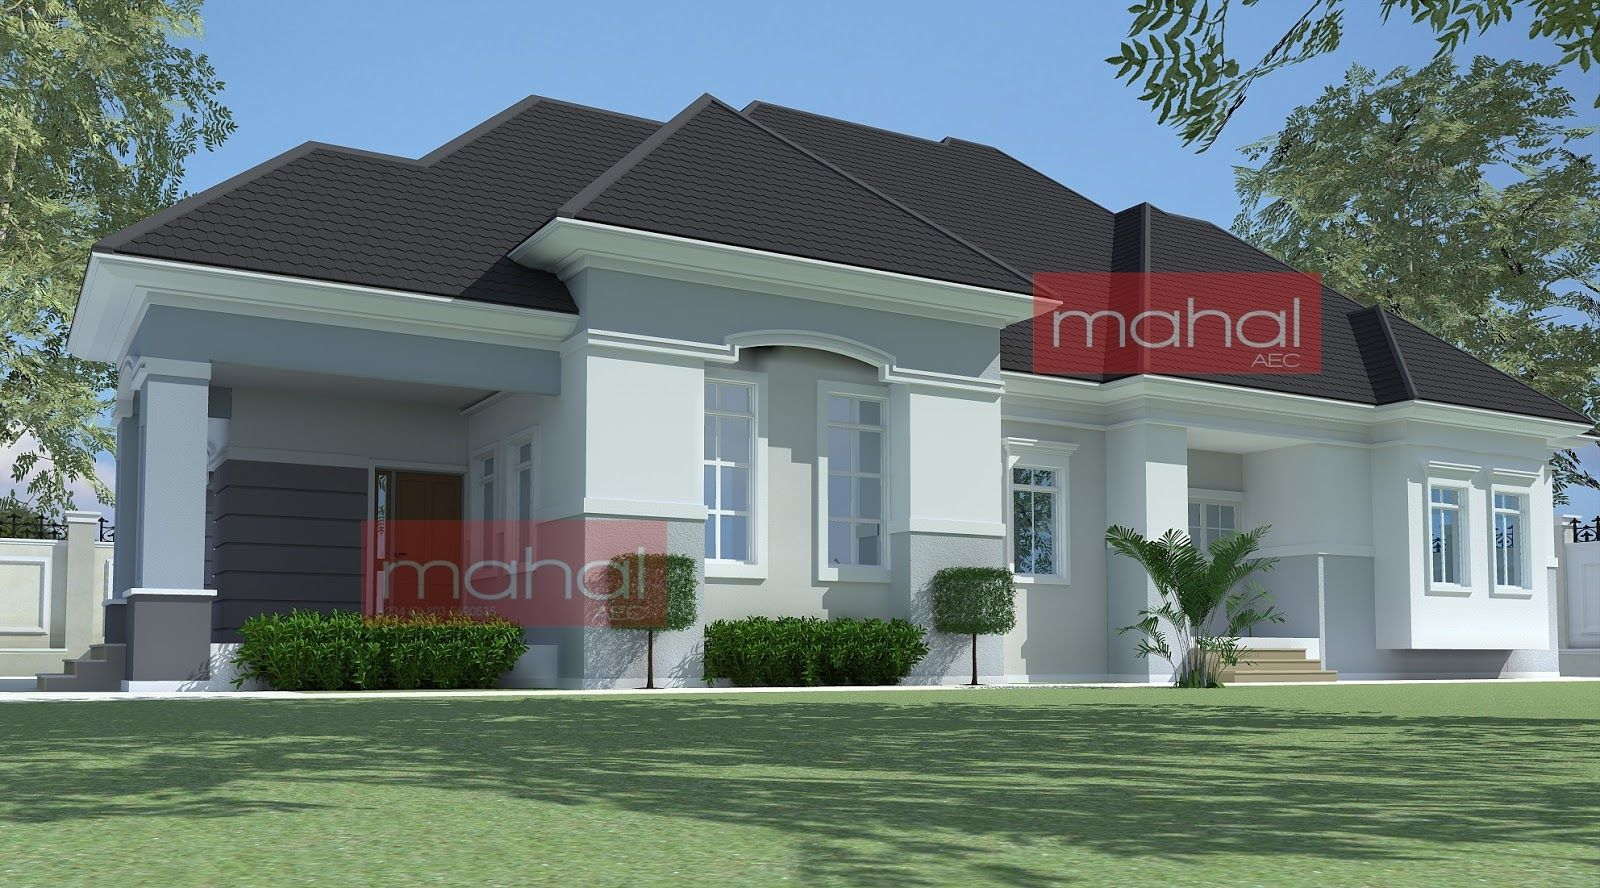 4 bedroom bungalow plan in nigeria 4 bedroom bungalow for Buy house plans